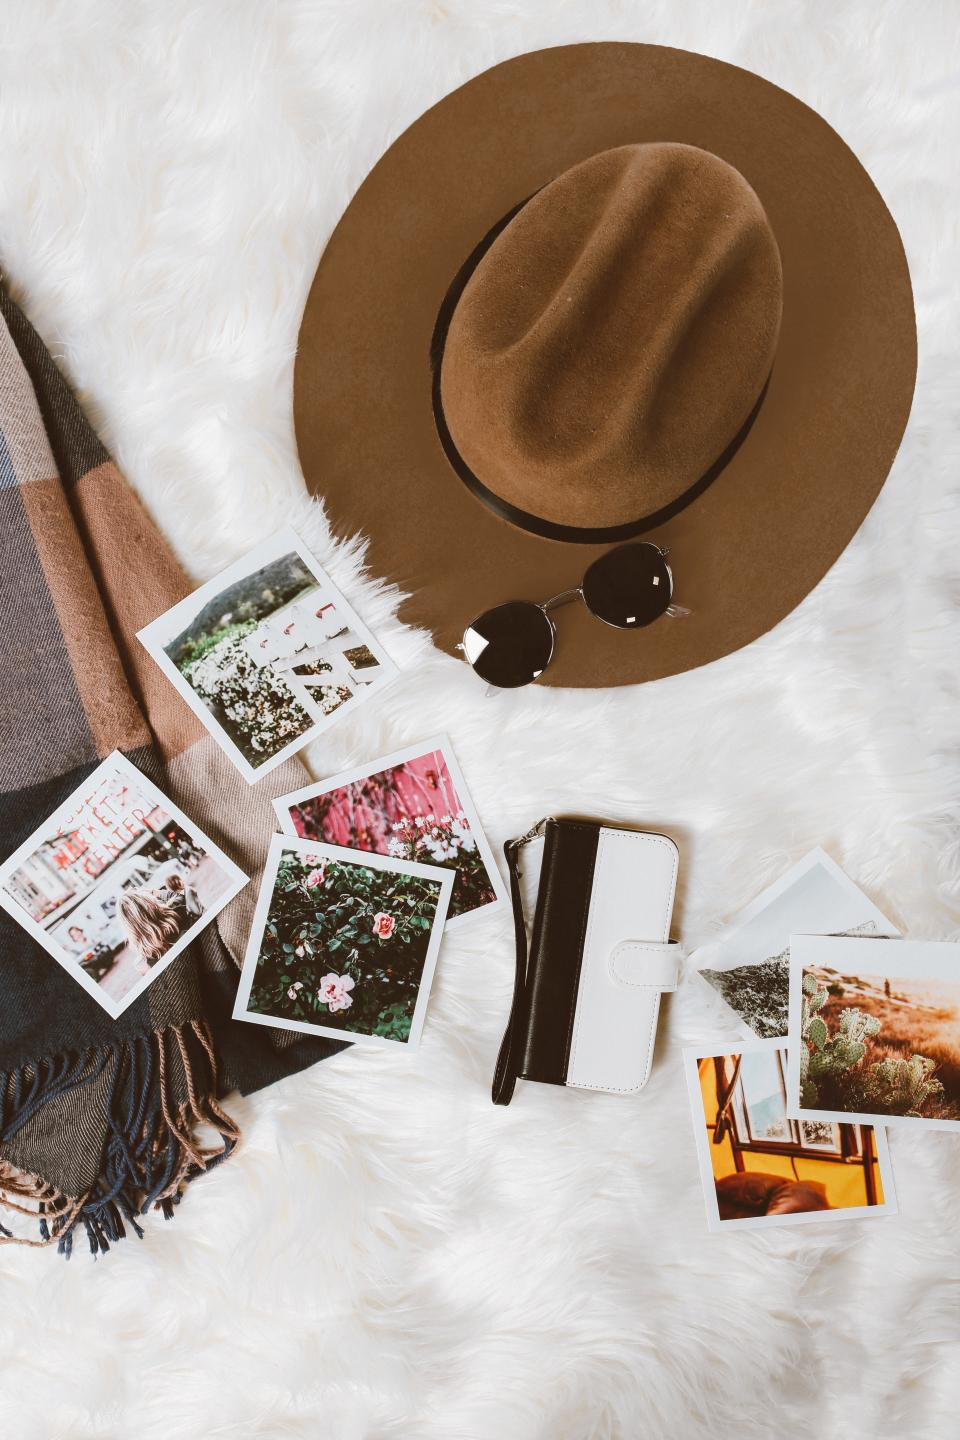 shawl hat sunglasses photo wallet travel